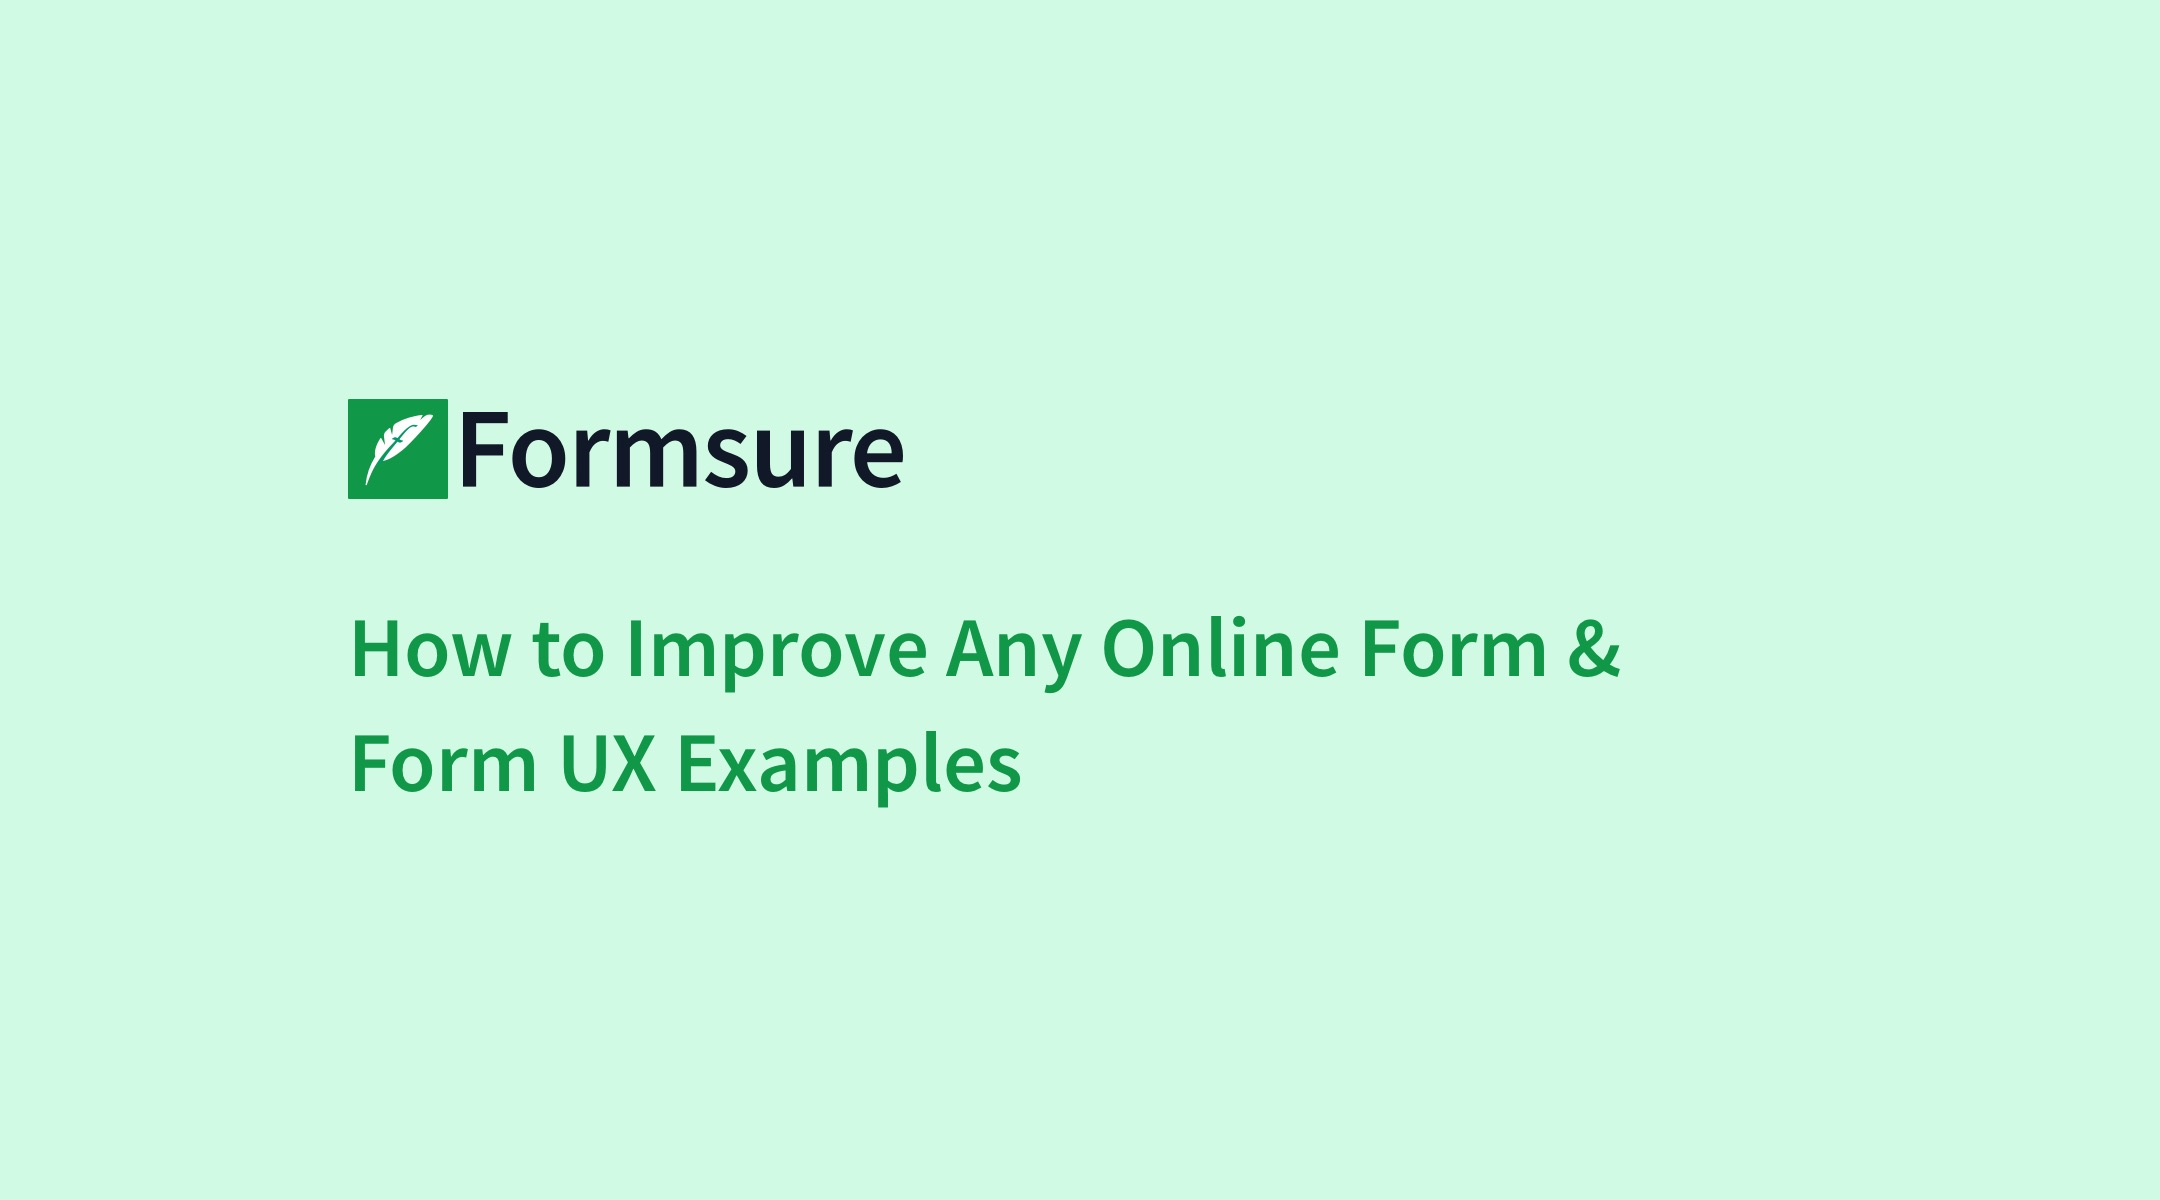 How to Improve Any Online Form & Form UX Examples - Formsure